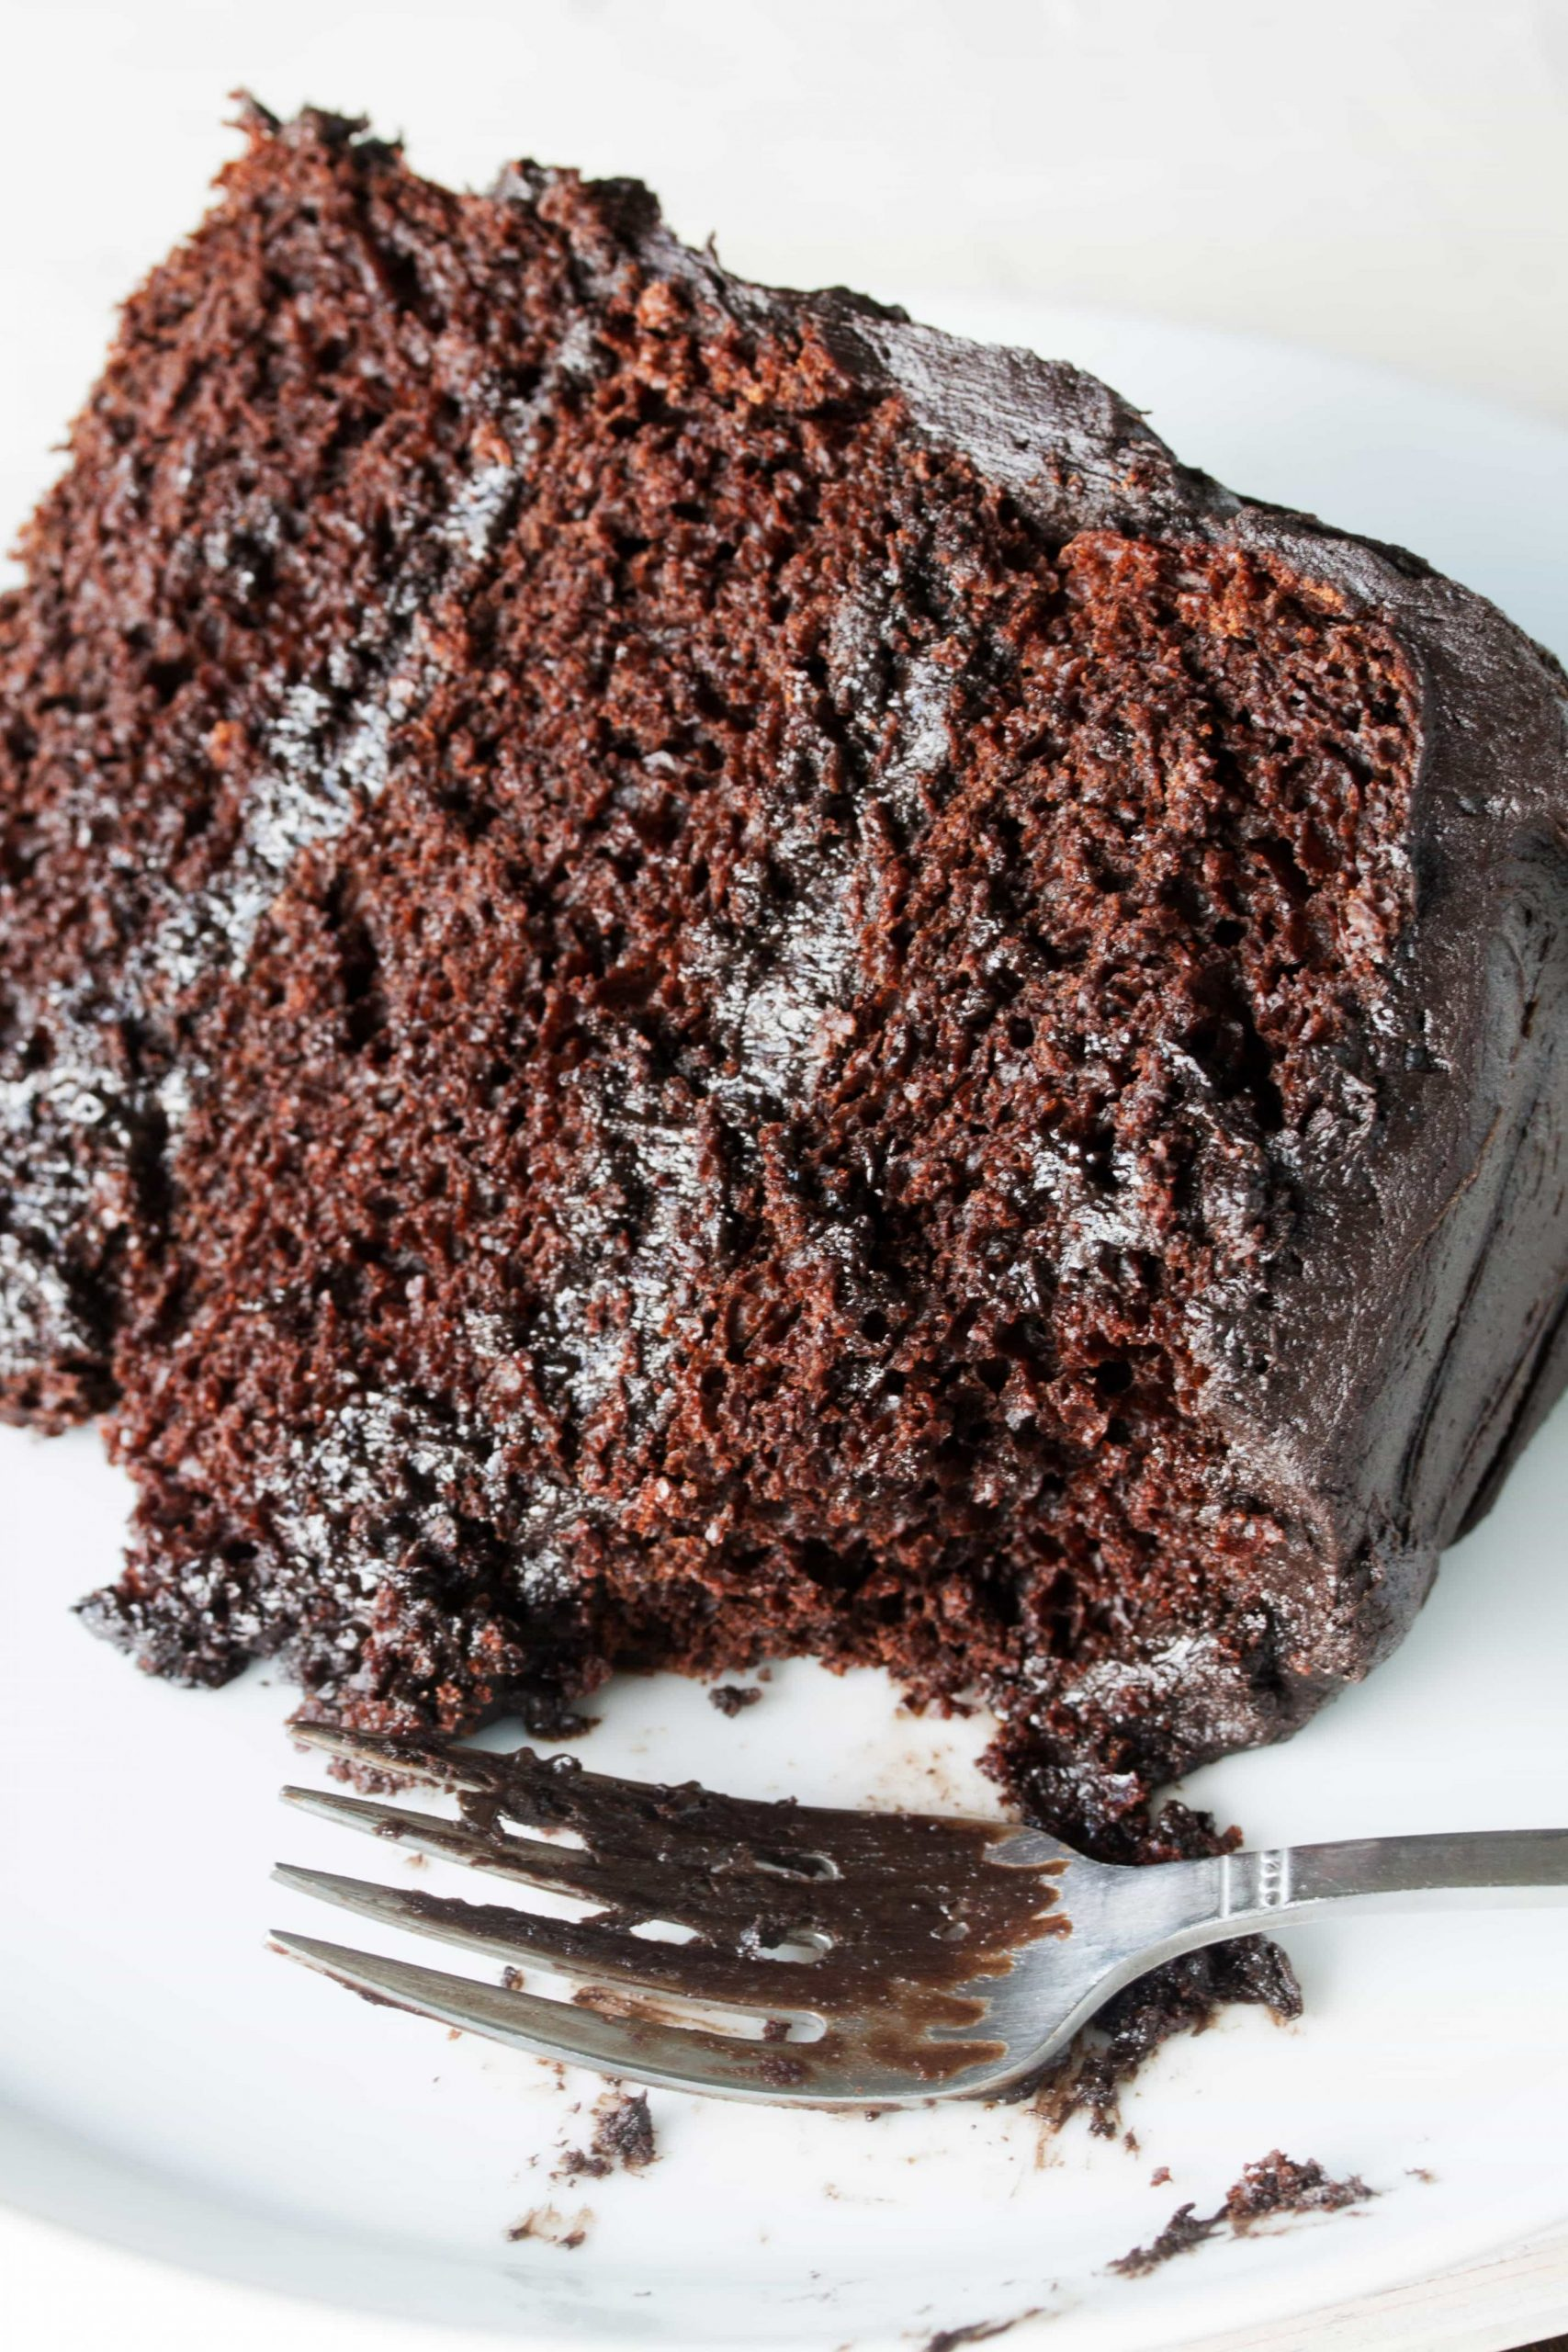 The Most Amazing Chocolate Cake - Recipes Using Chocolate Cake Mix